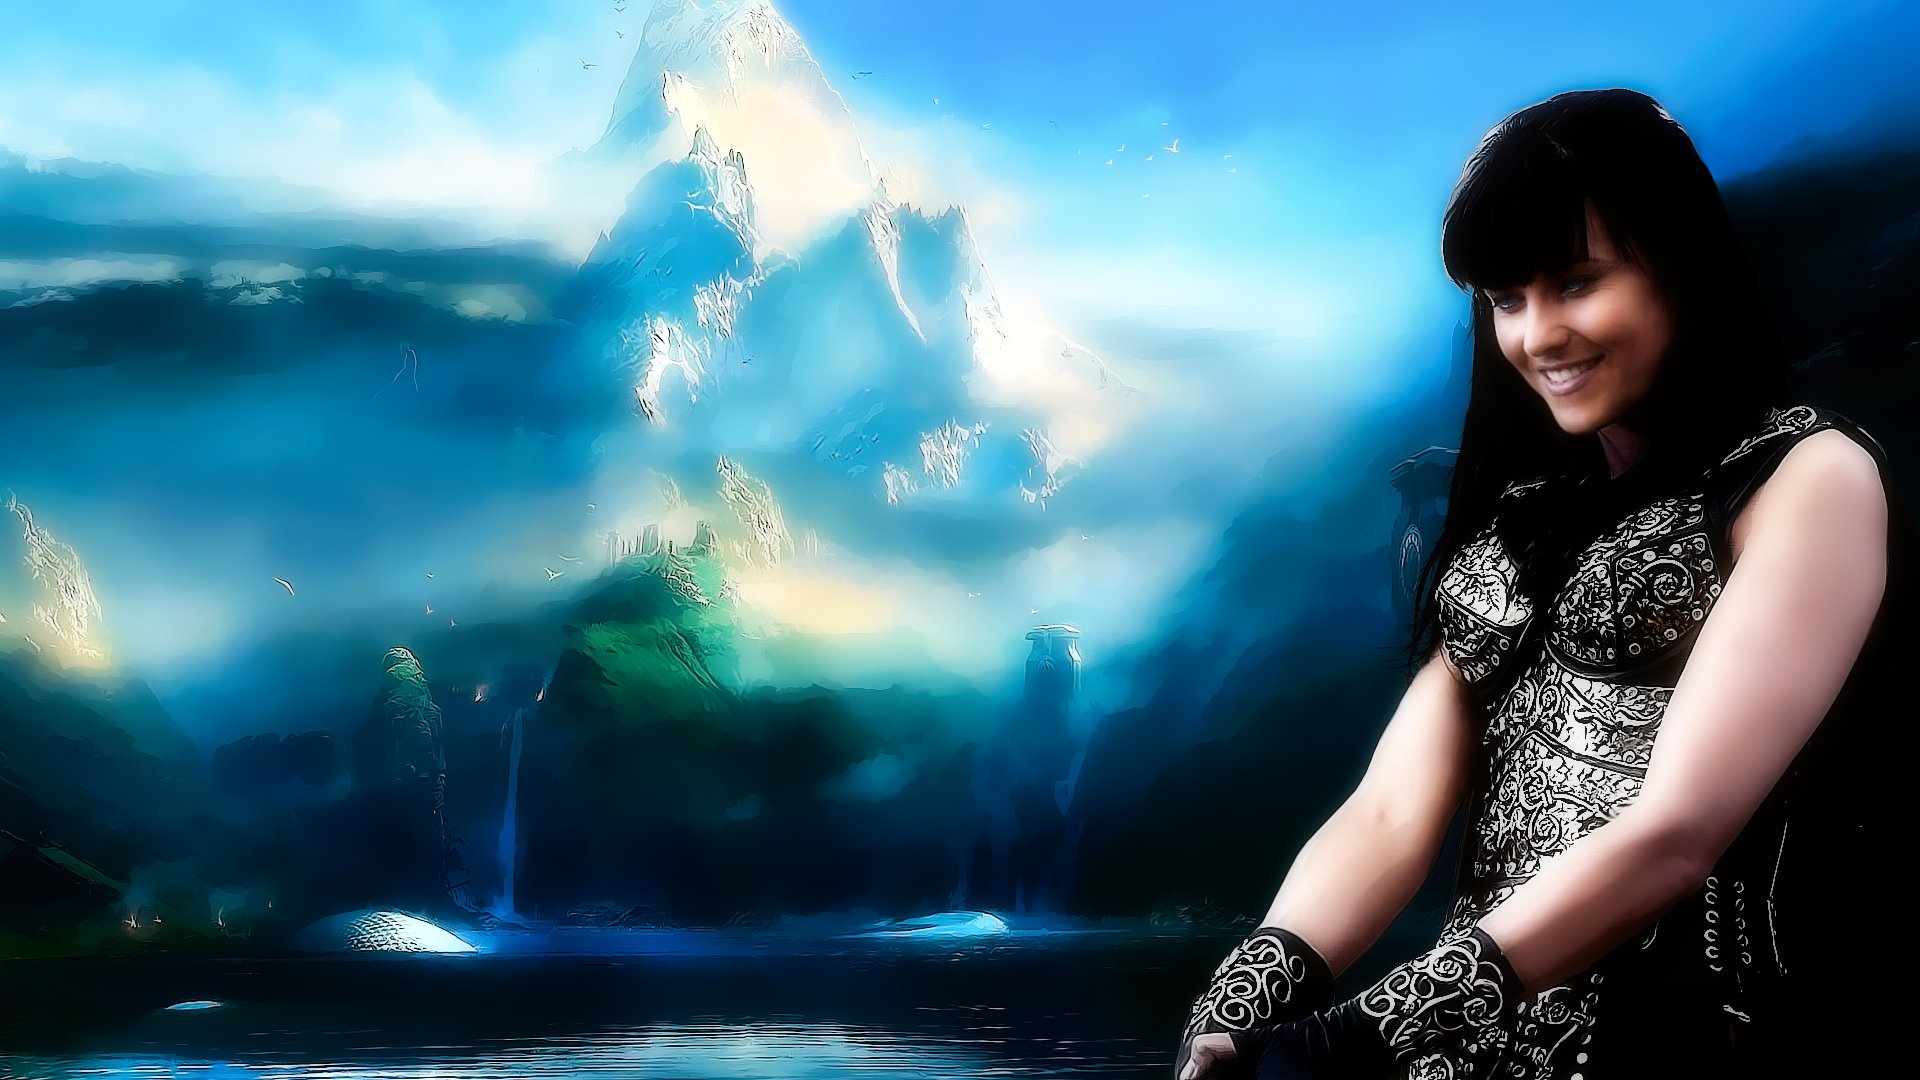 Wallpapers ID:1003928